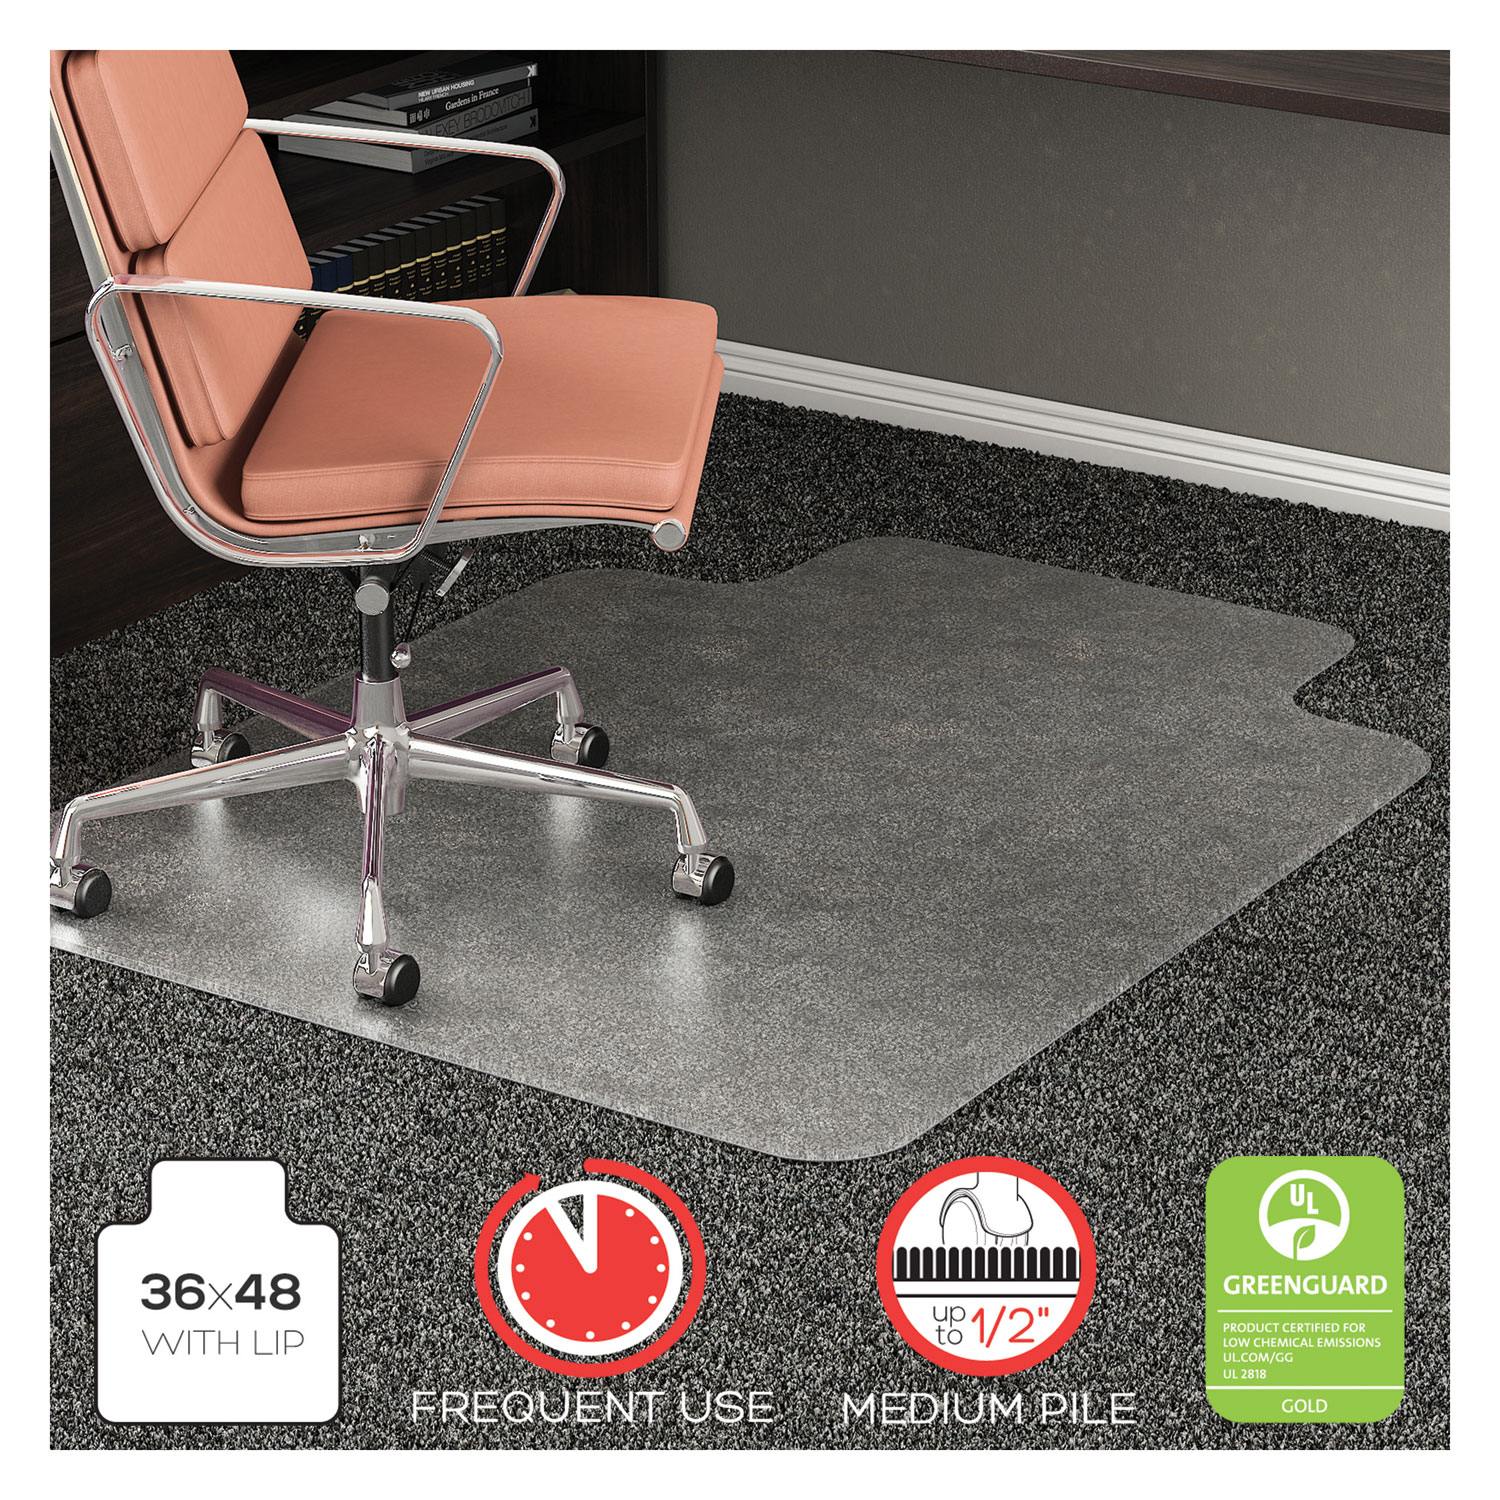 052cf84274f DEFCM15113 deflecto® RollaMat Frequent Use Chair Mat - Zuma